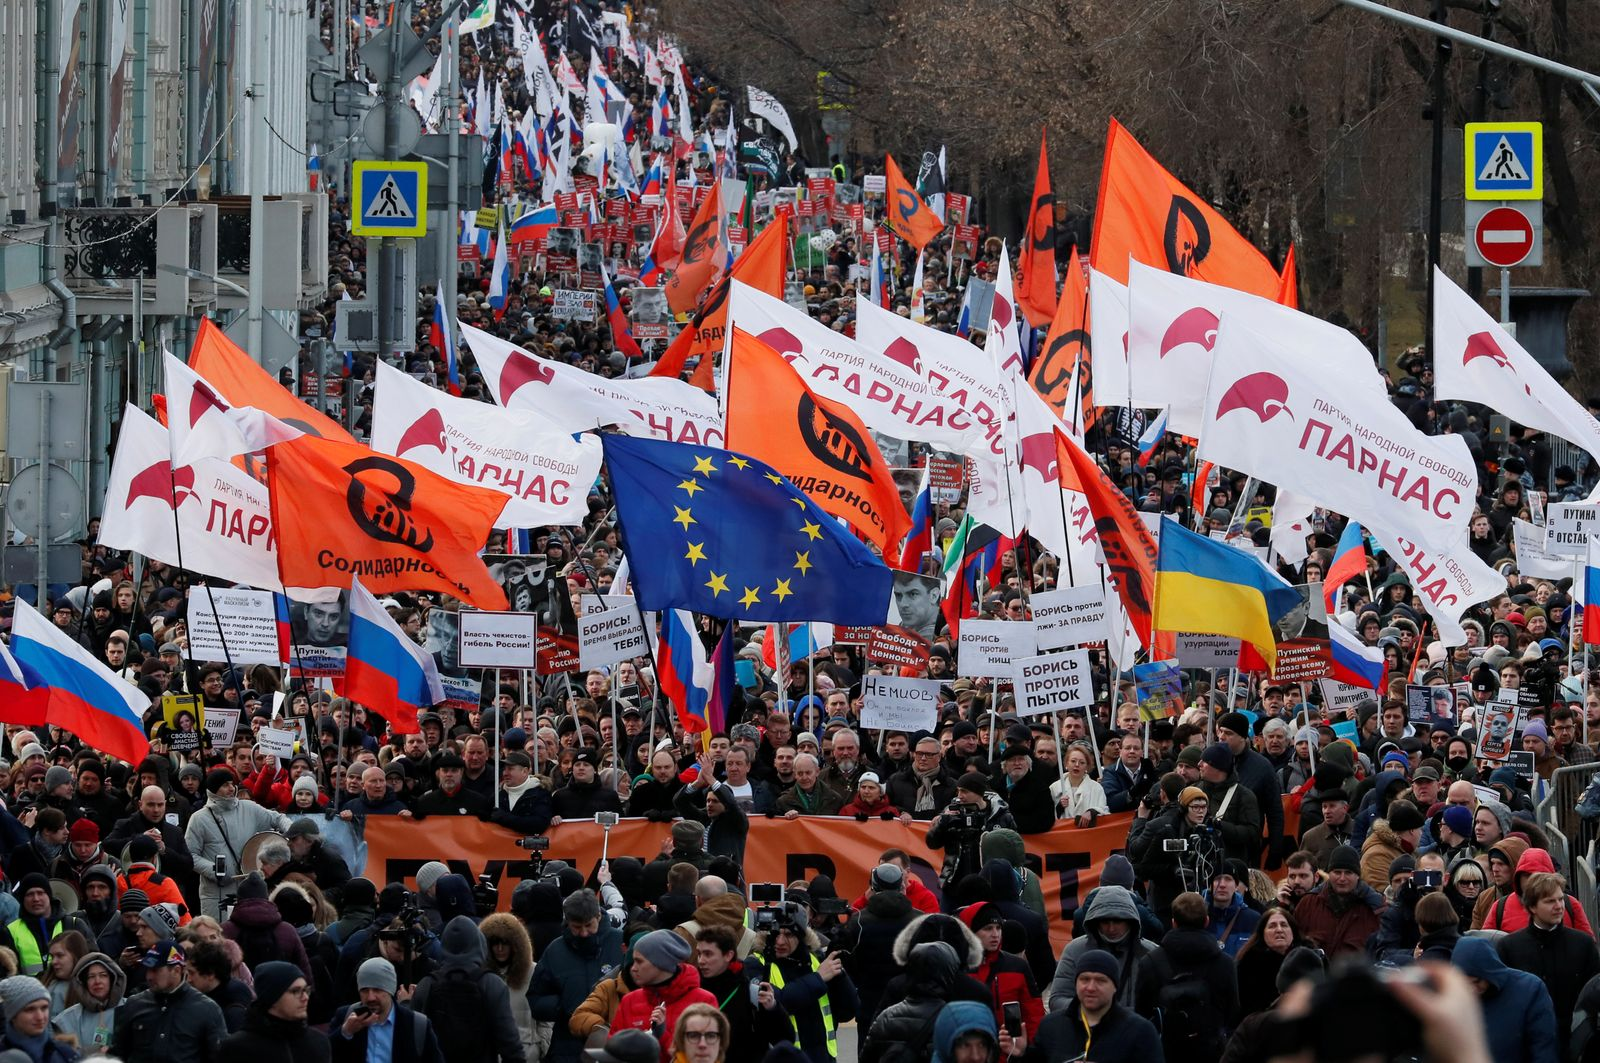 People take part in a rally to mark the 5th anniversary of Russian opposition politician Boris Nemtsov's murder and to protest against proposed amendments to the country's constitution, in Moscow